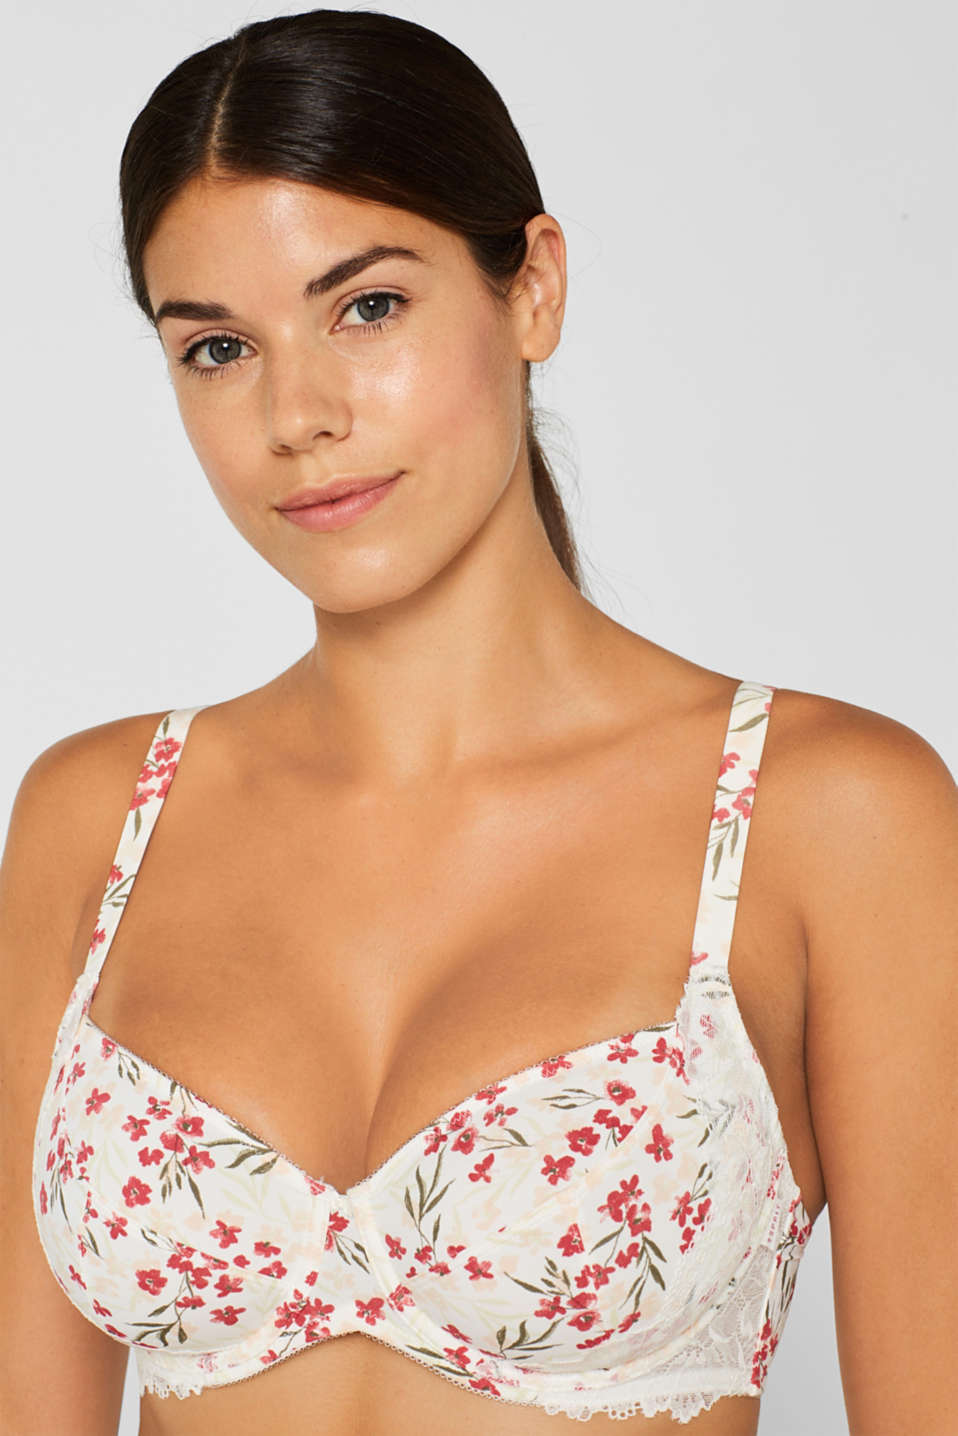 Unpadded underwire bra with a print, for larger cup sizes, OFF WHITE, detail image number 2